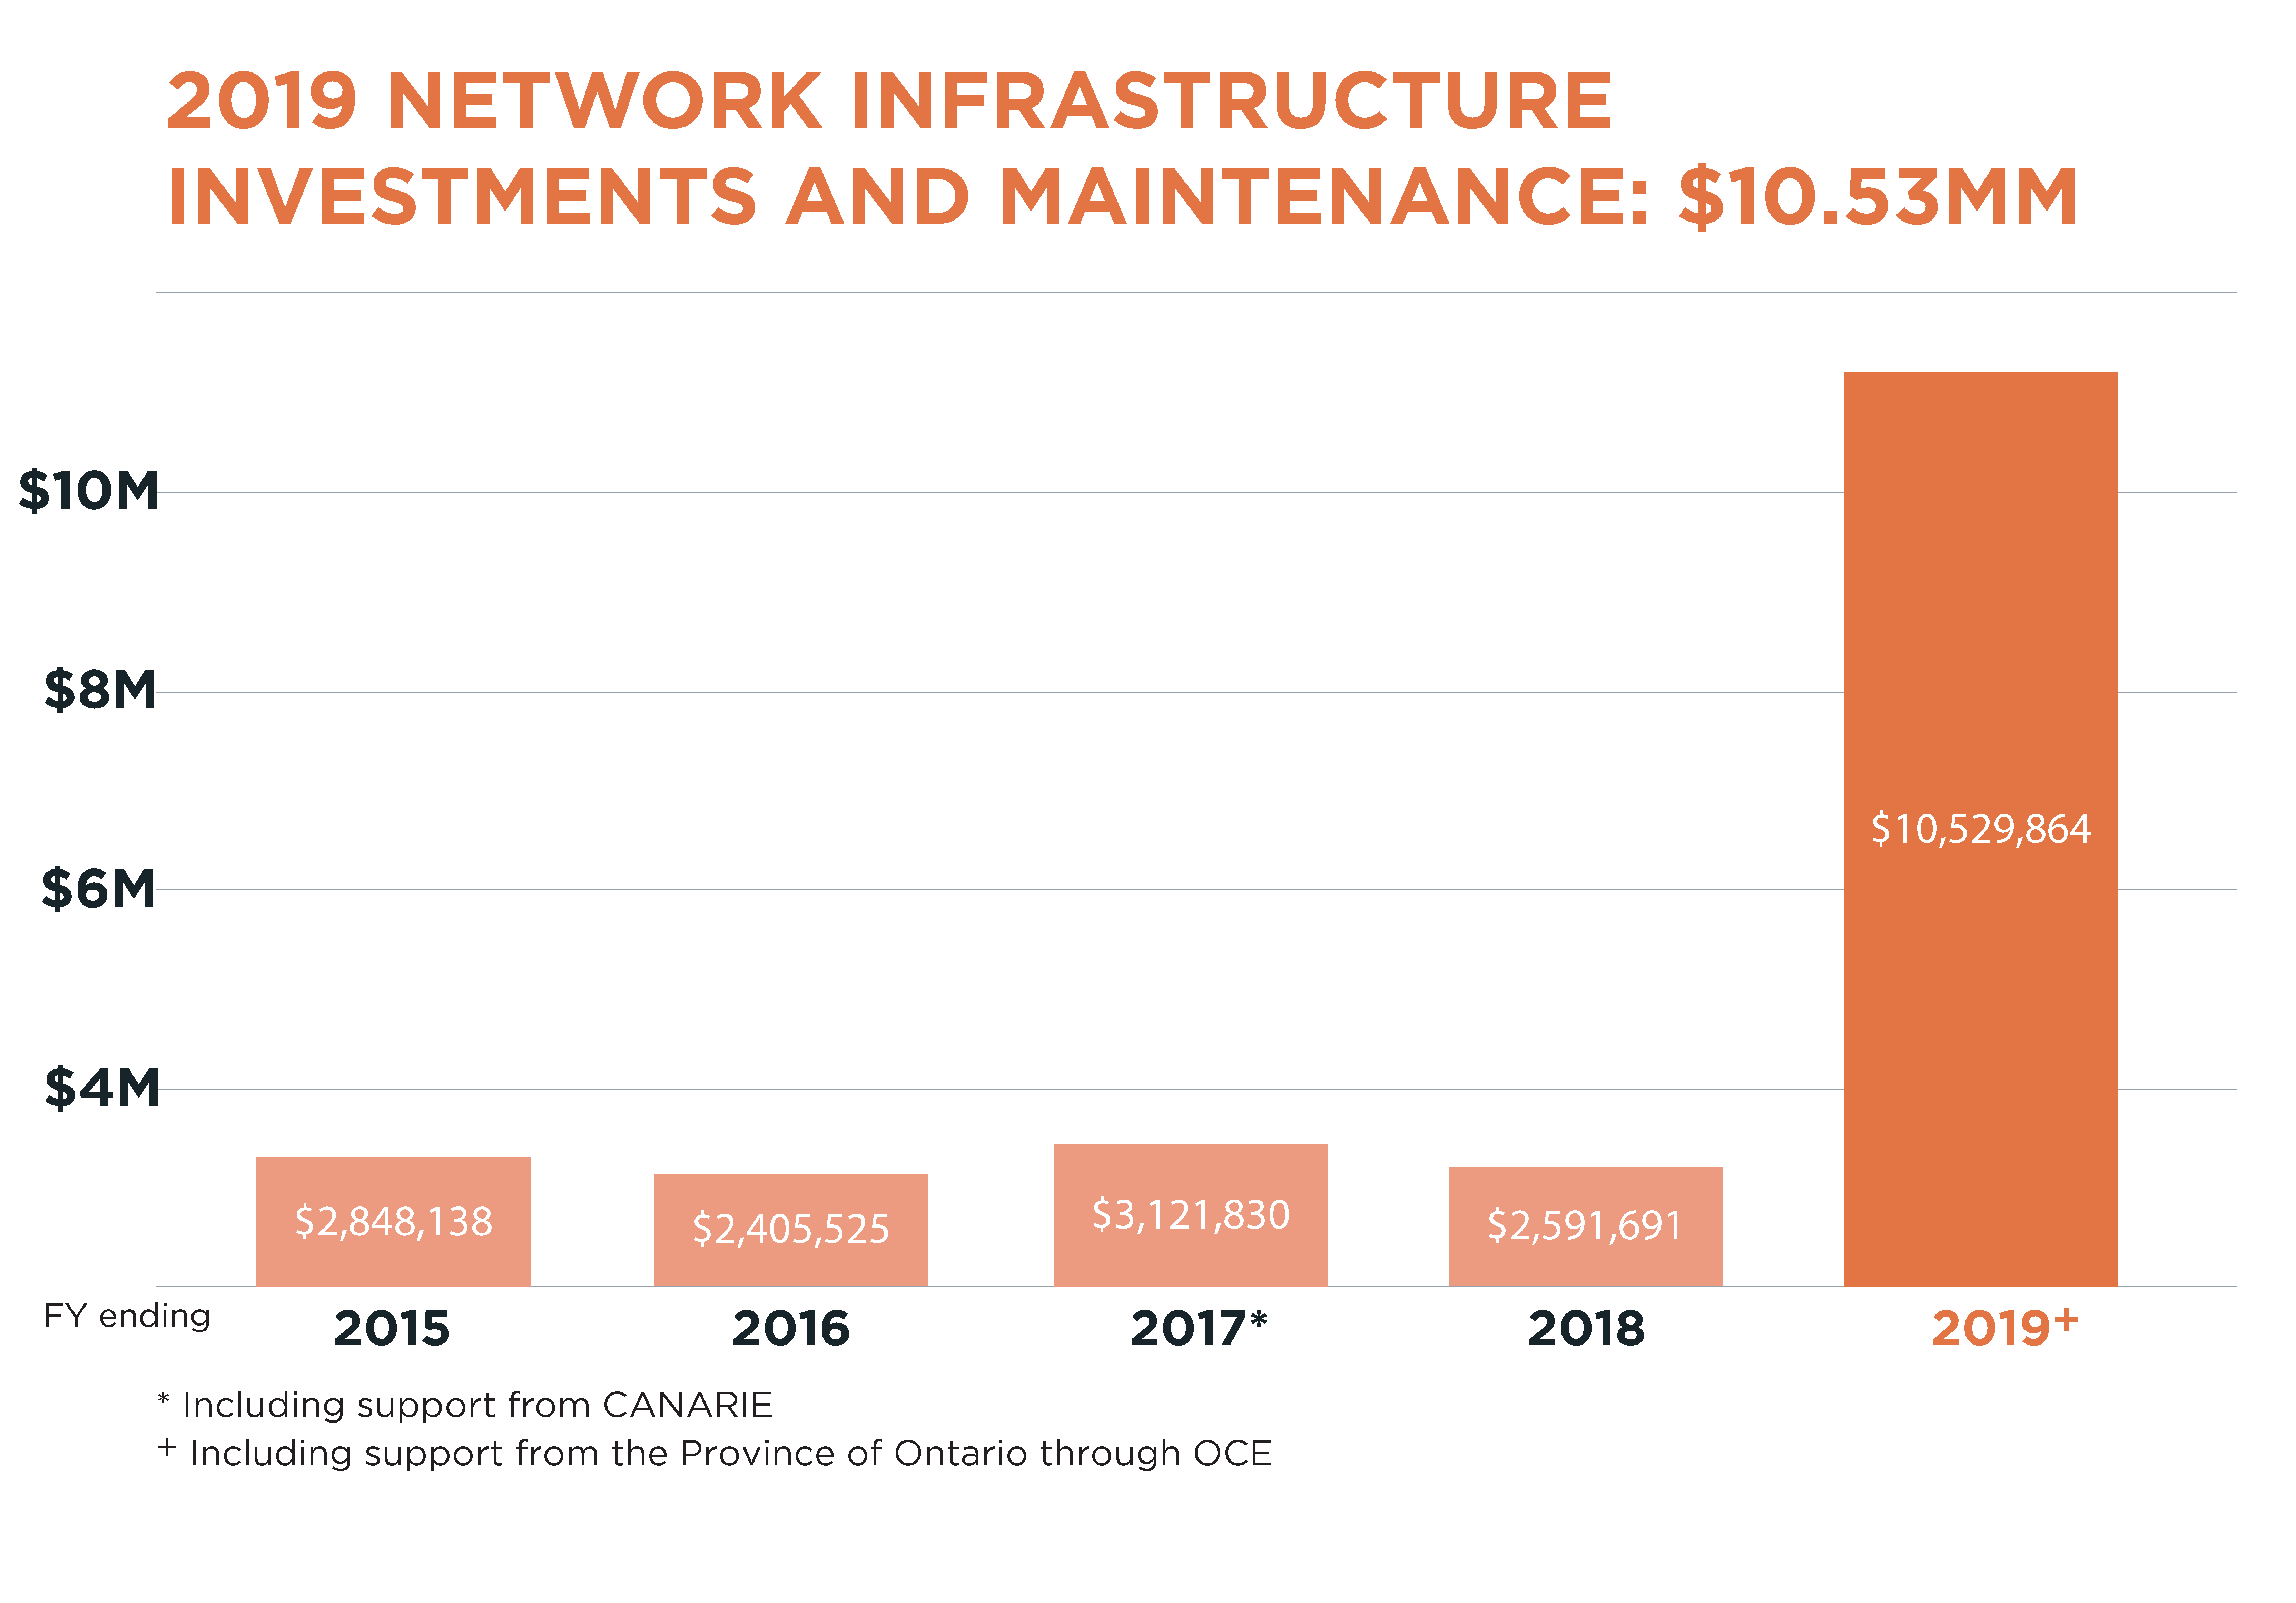 A graph detailing investments put into the ORION Network